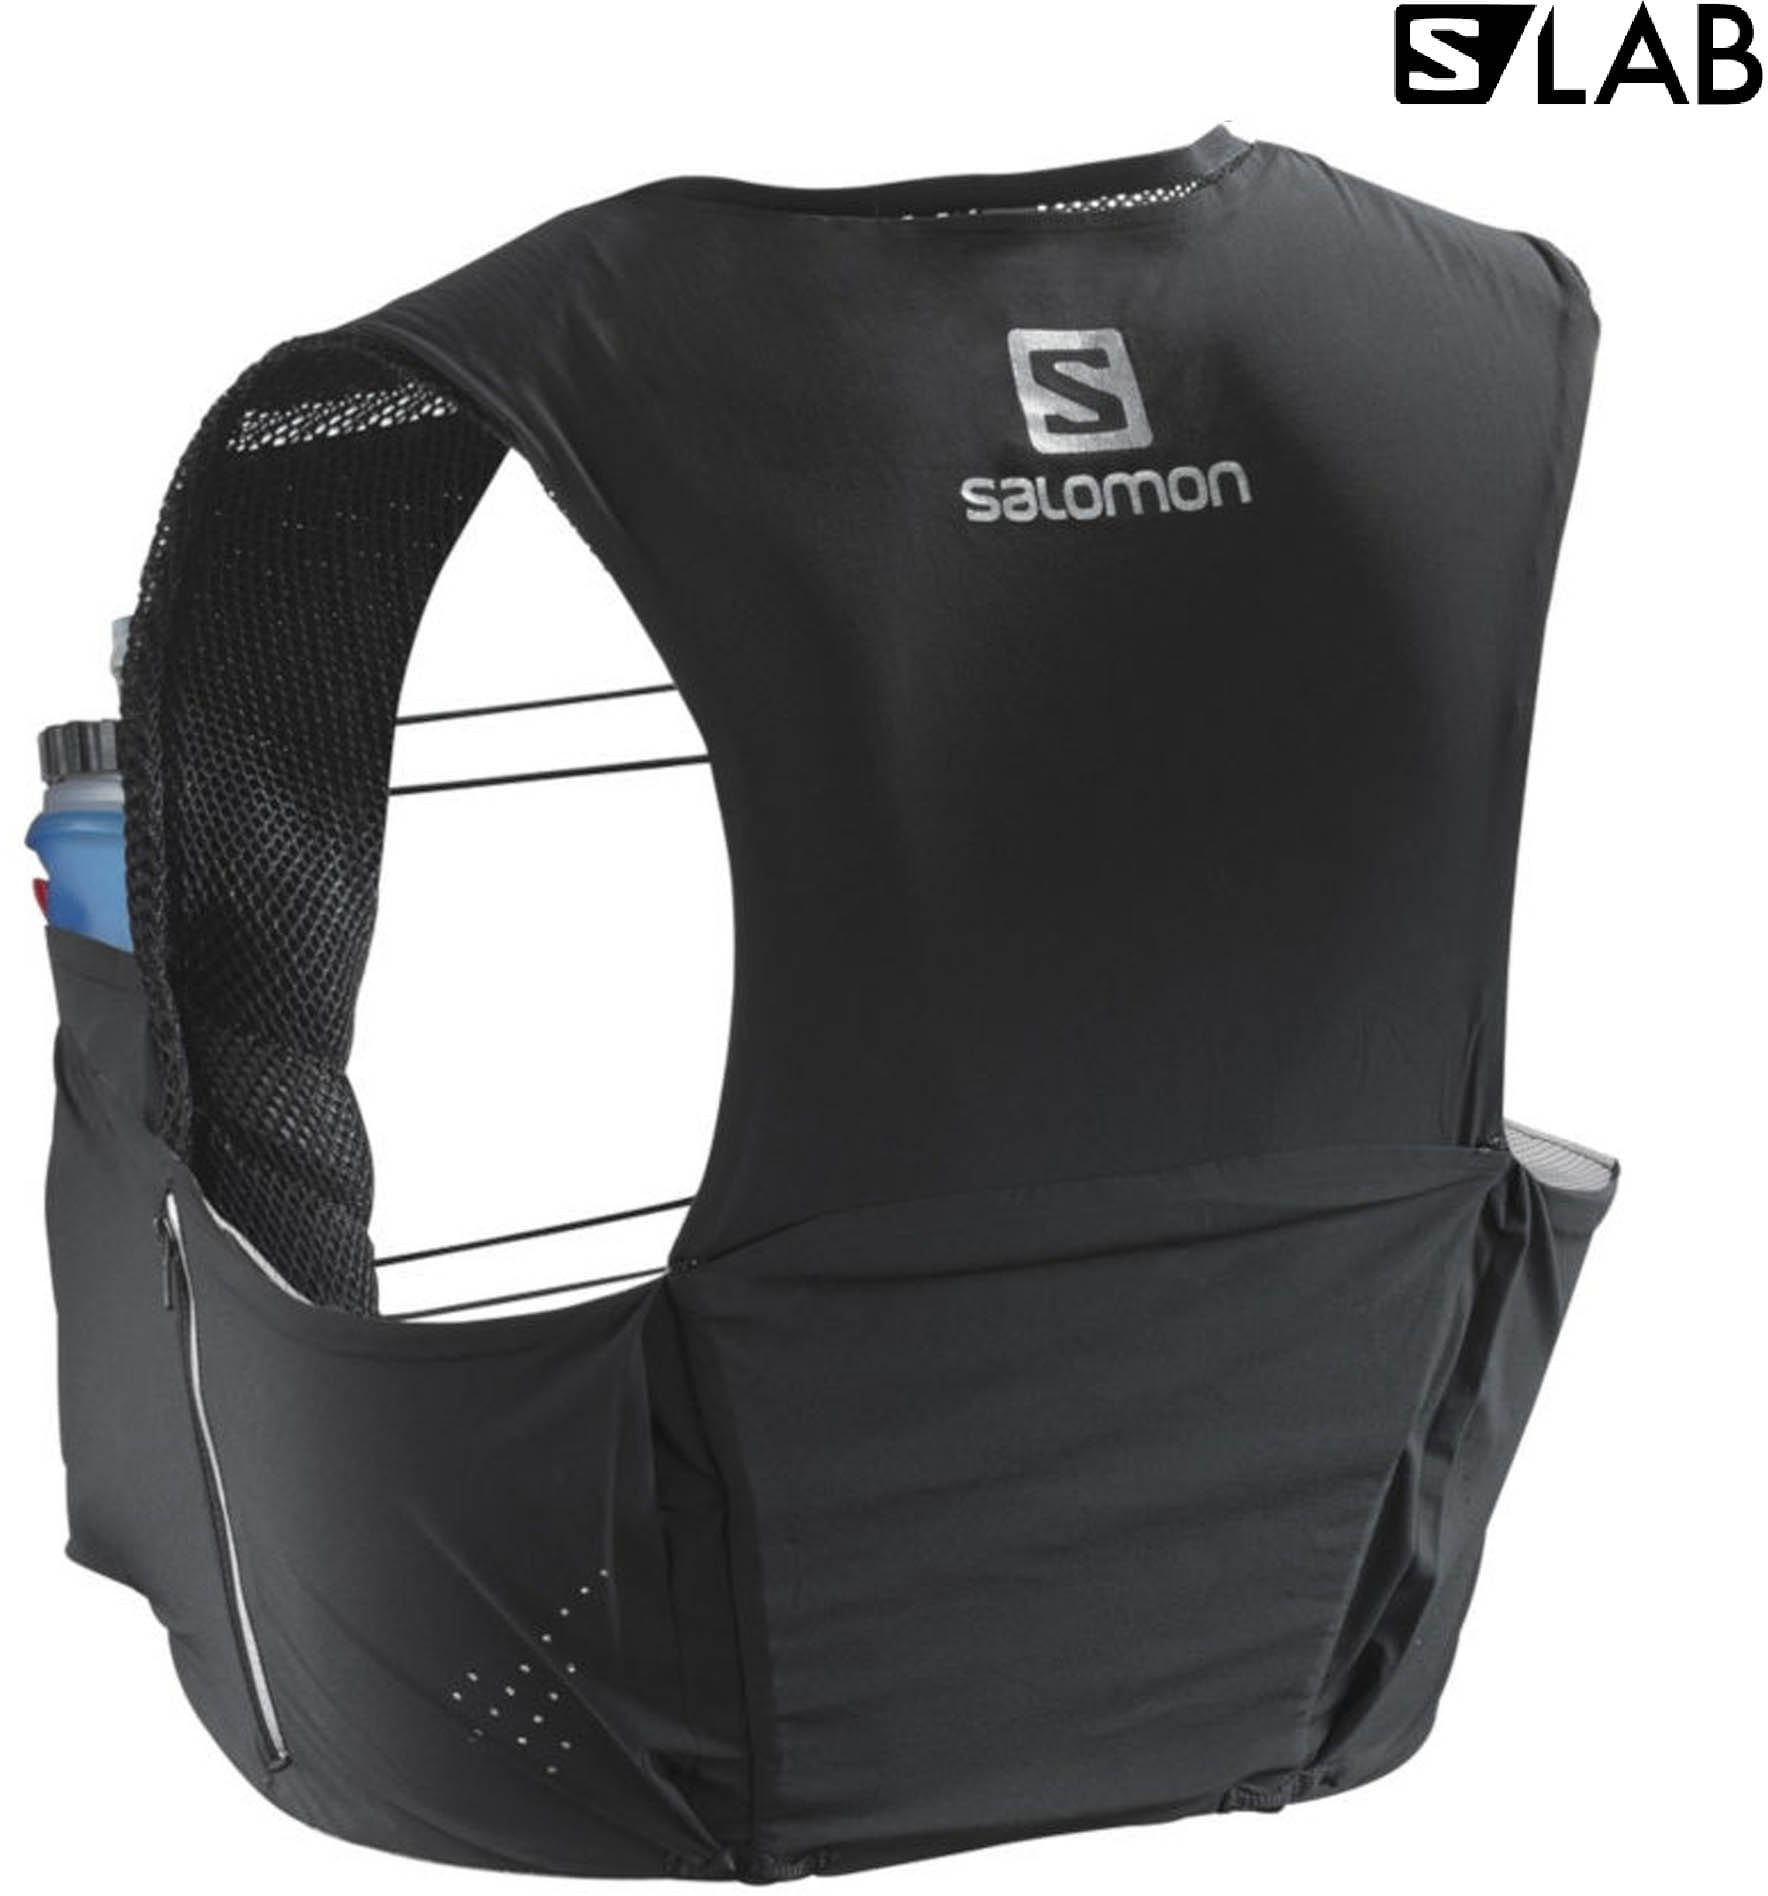 Plecak Salomon S-Lab Sense Ultra 5 Set Black